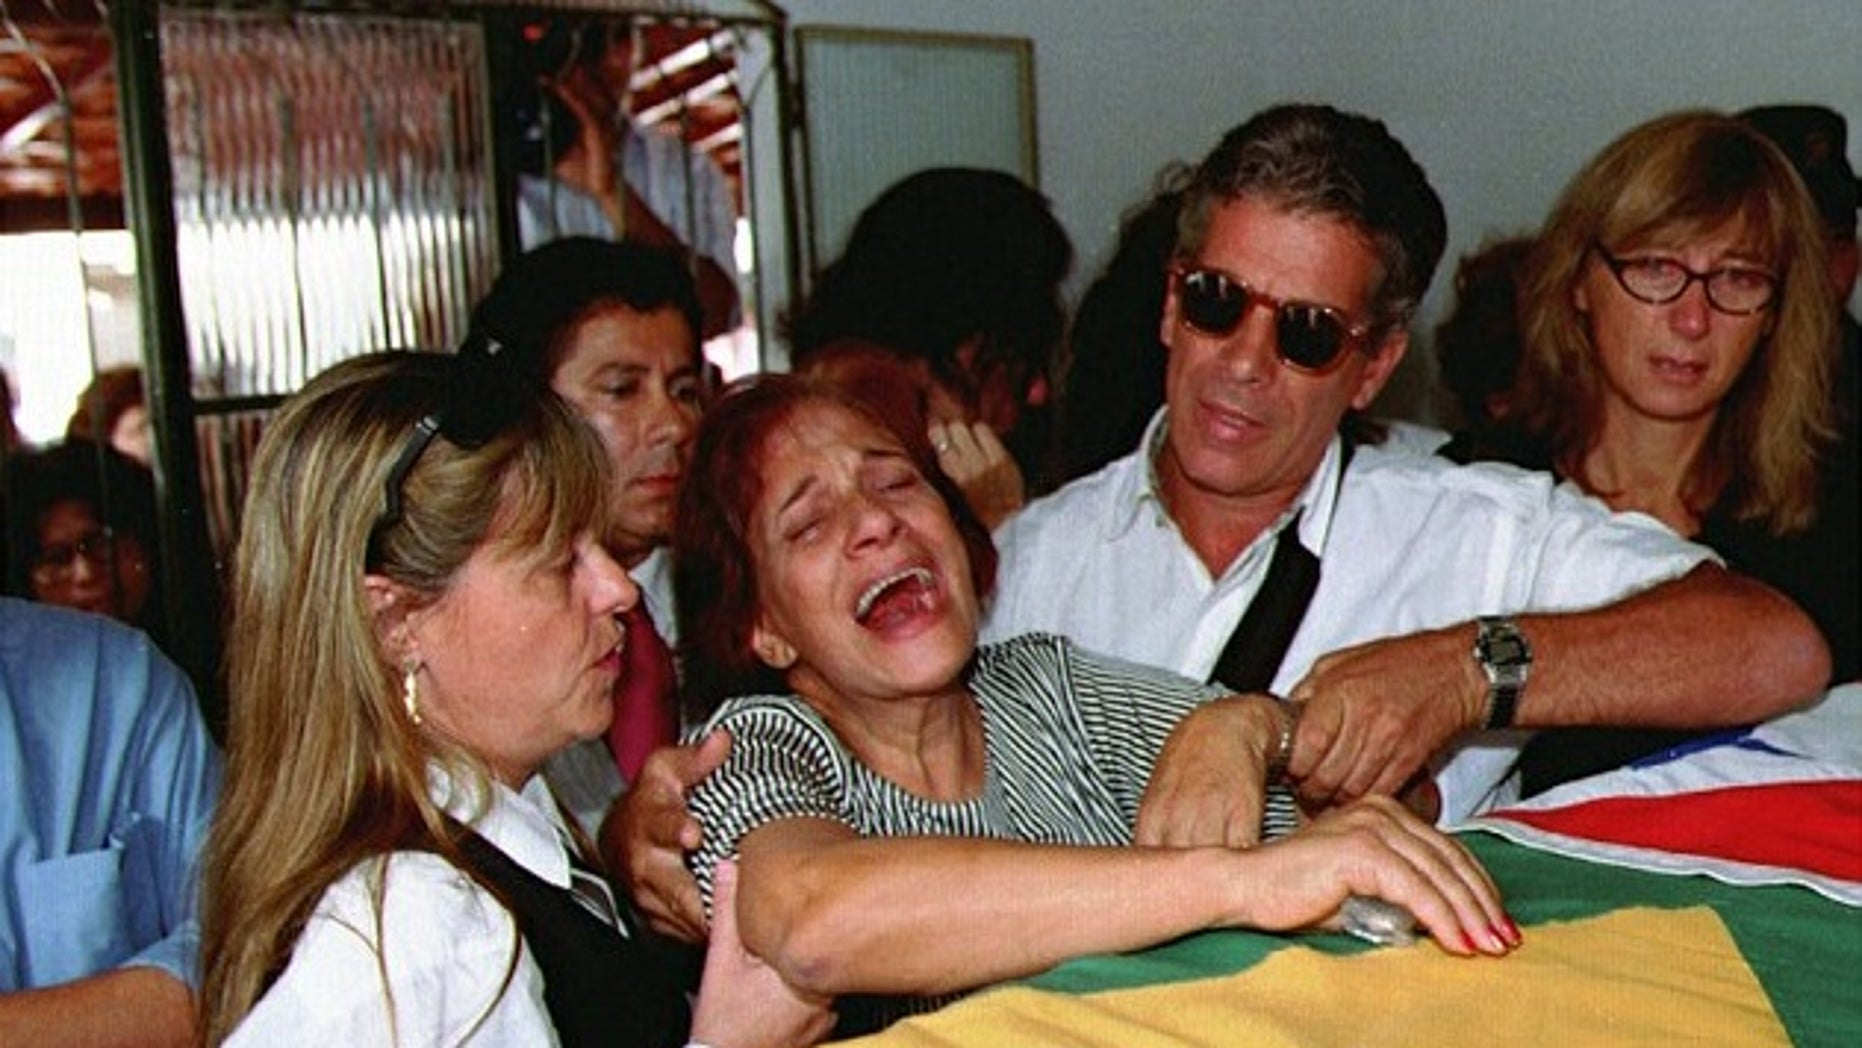 Lidia Pinto Machado, center, mother of Maria Isabel Monteiro Alves, mourns over her daughter's coffin during funeral services in 1995.